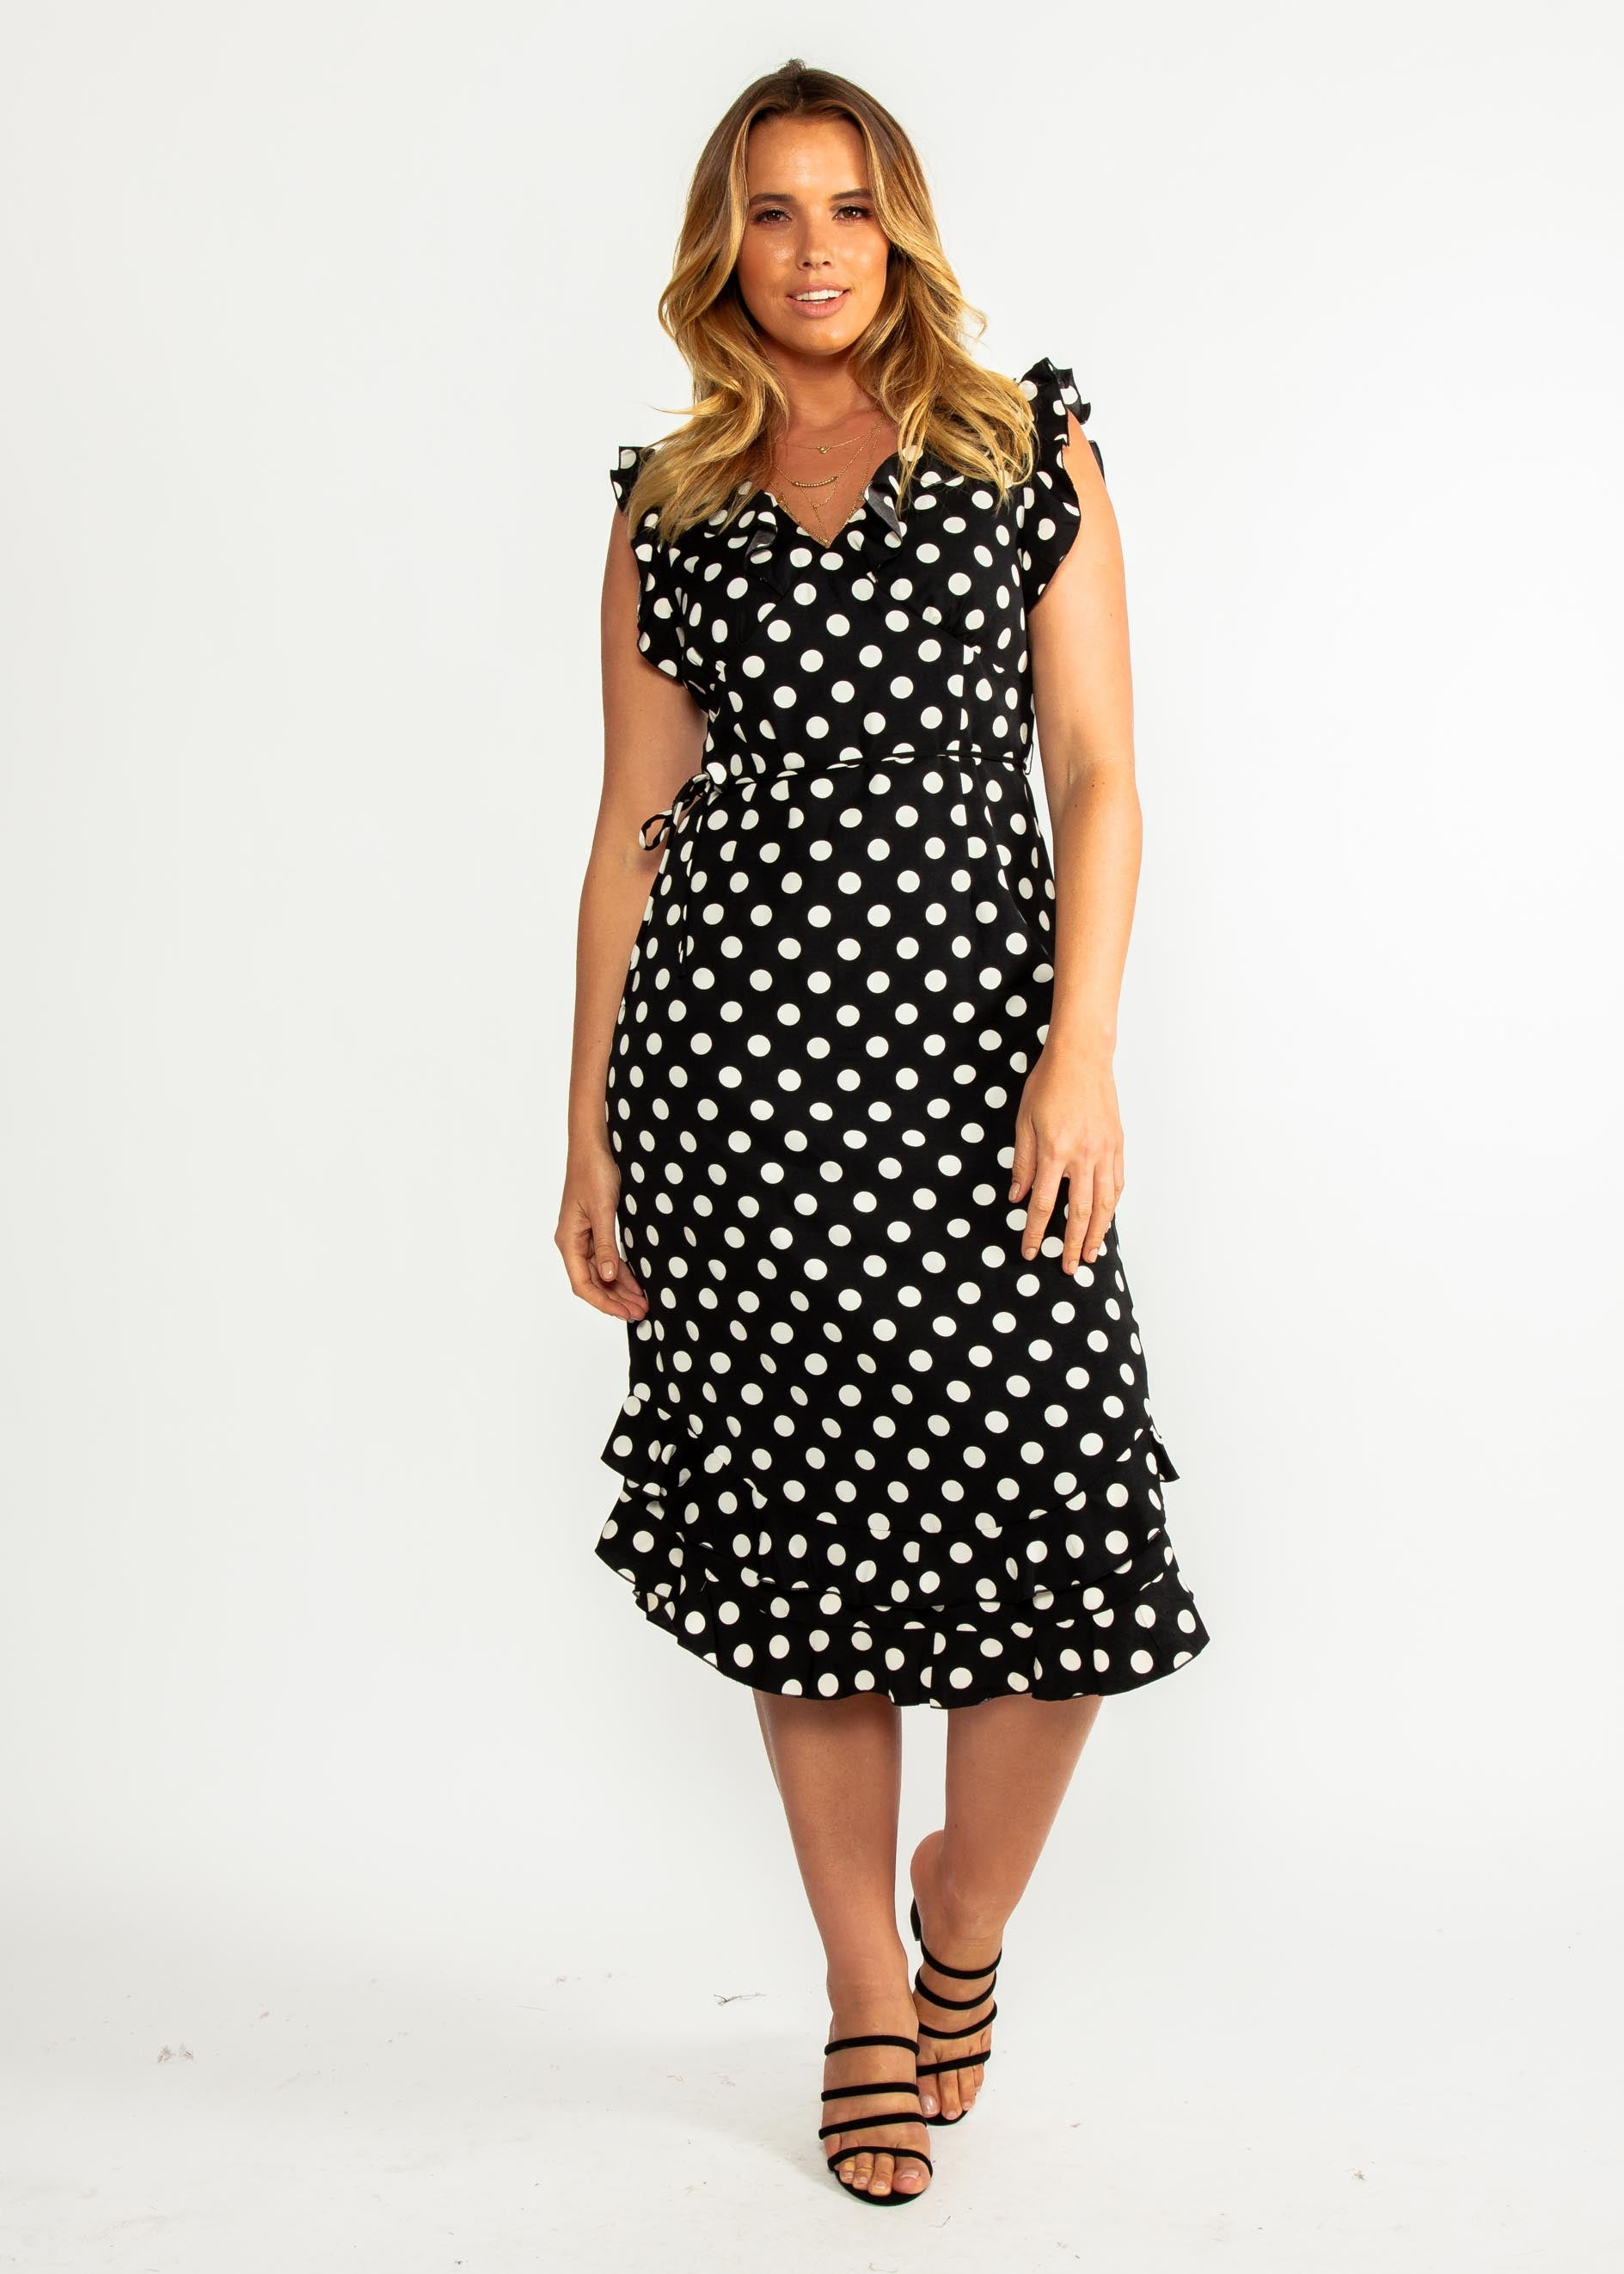 One Last Time Midi Dress - Black Polka